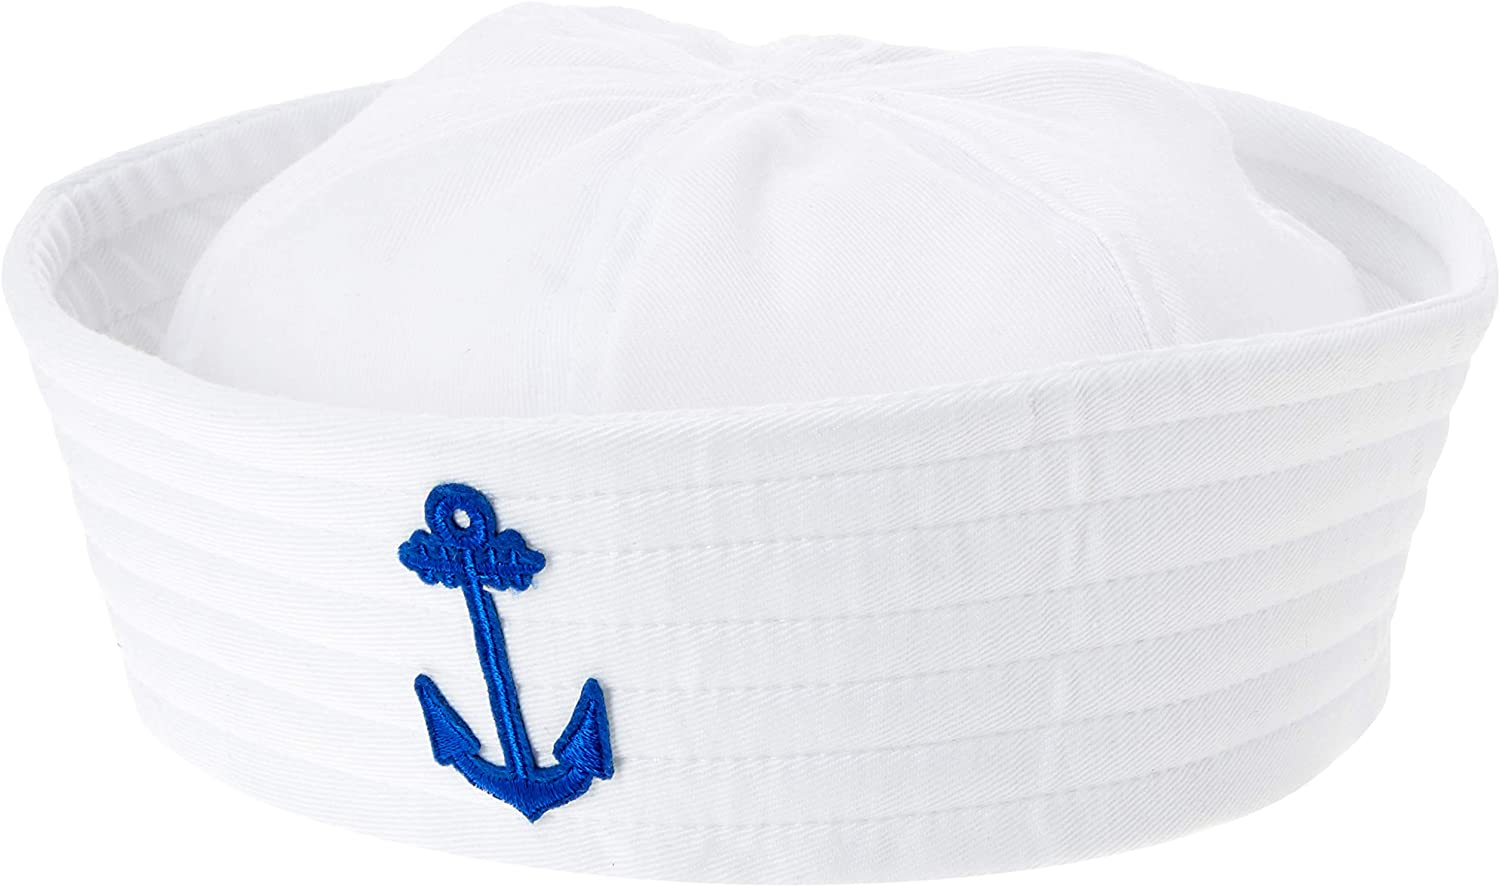 Amscan Popular brand in the world Blue Anchor Costume Opening large release sale Sailor Hat One Size White